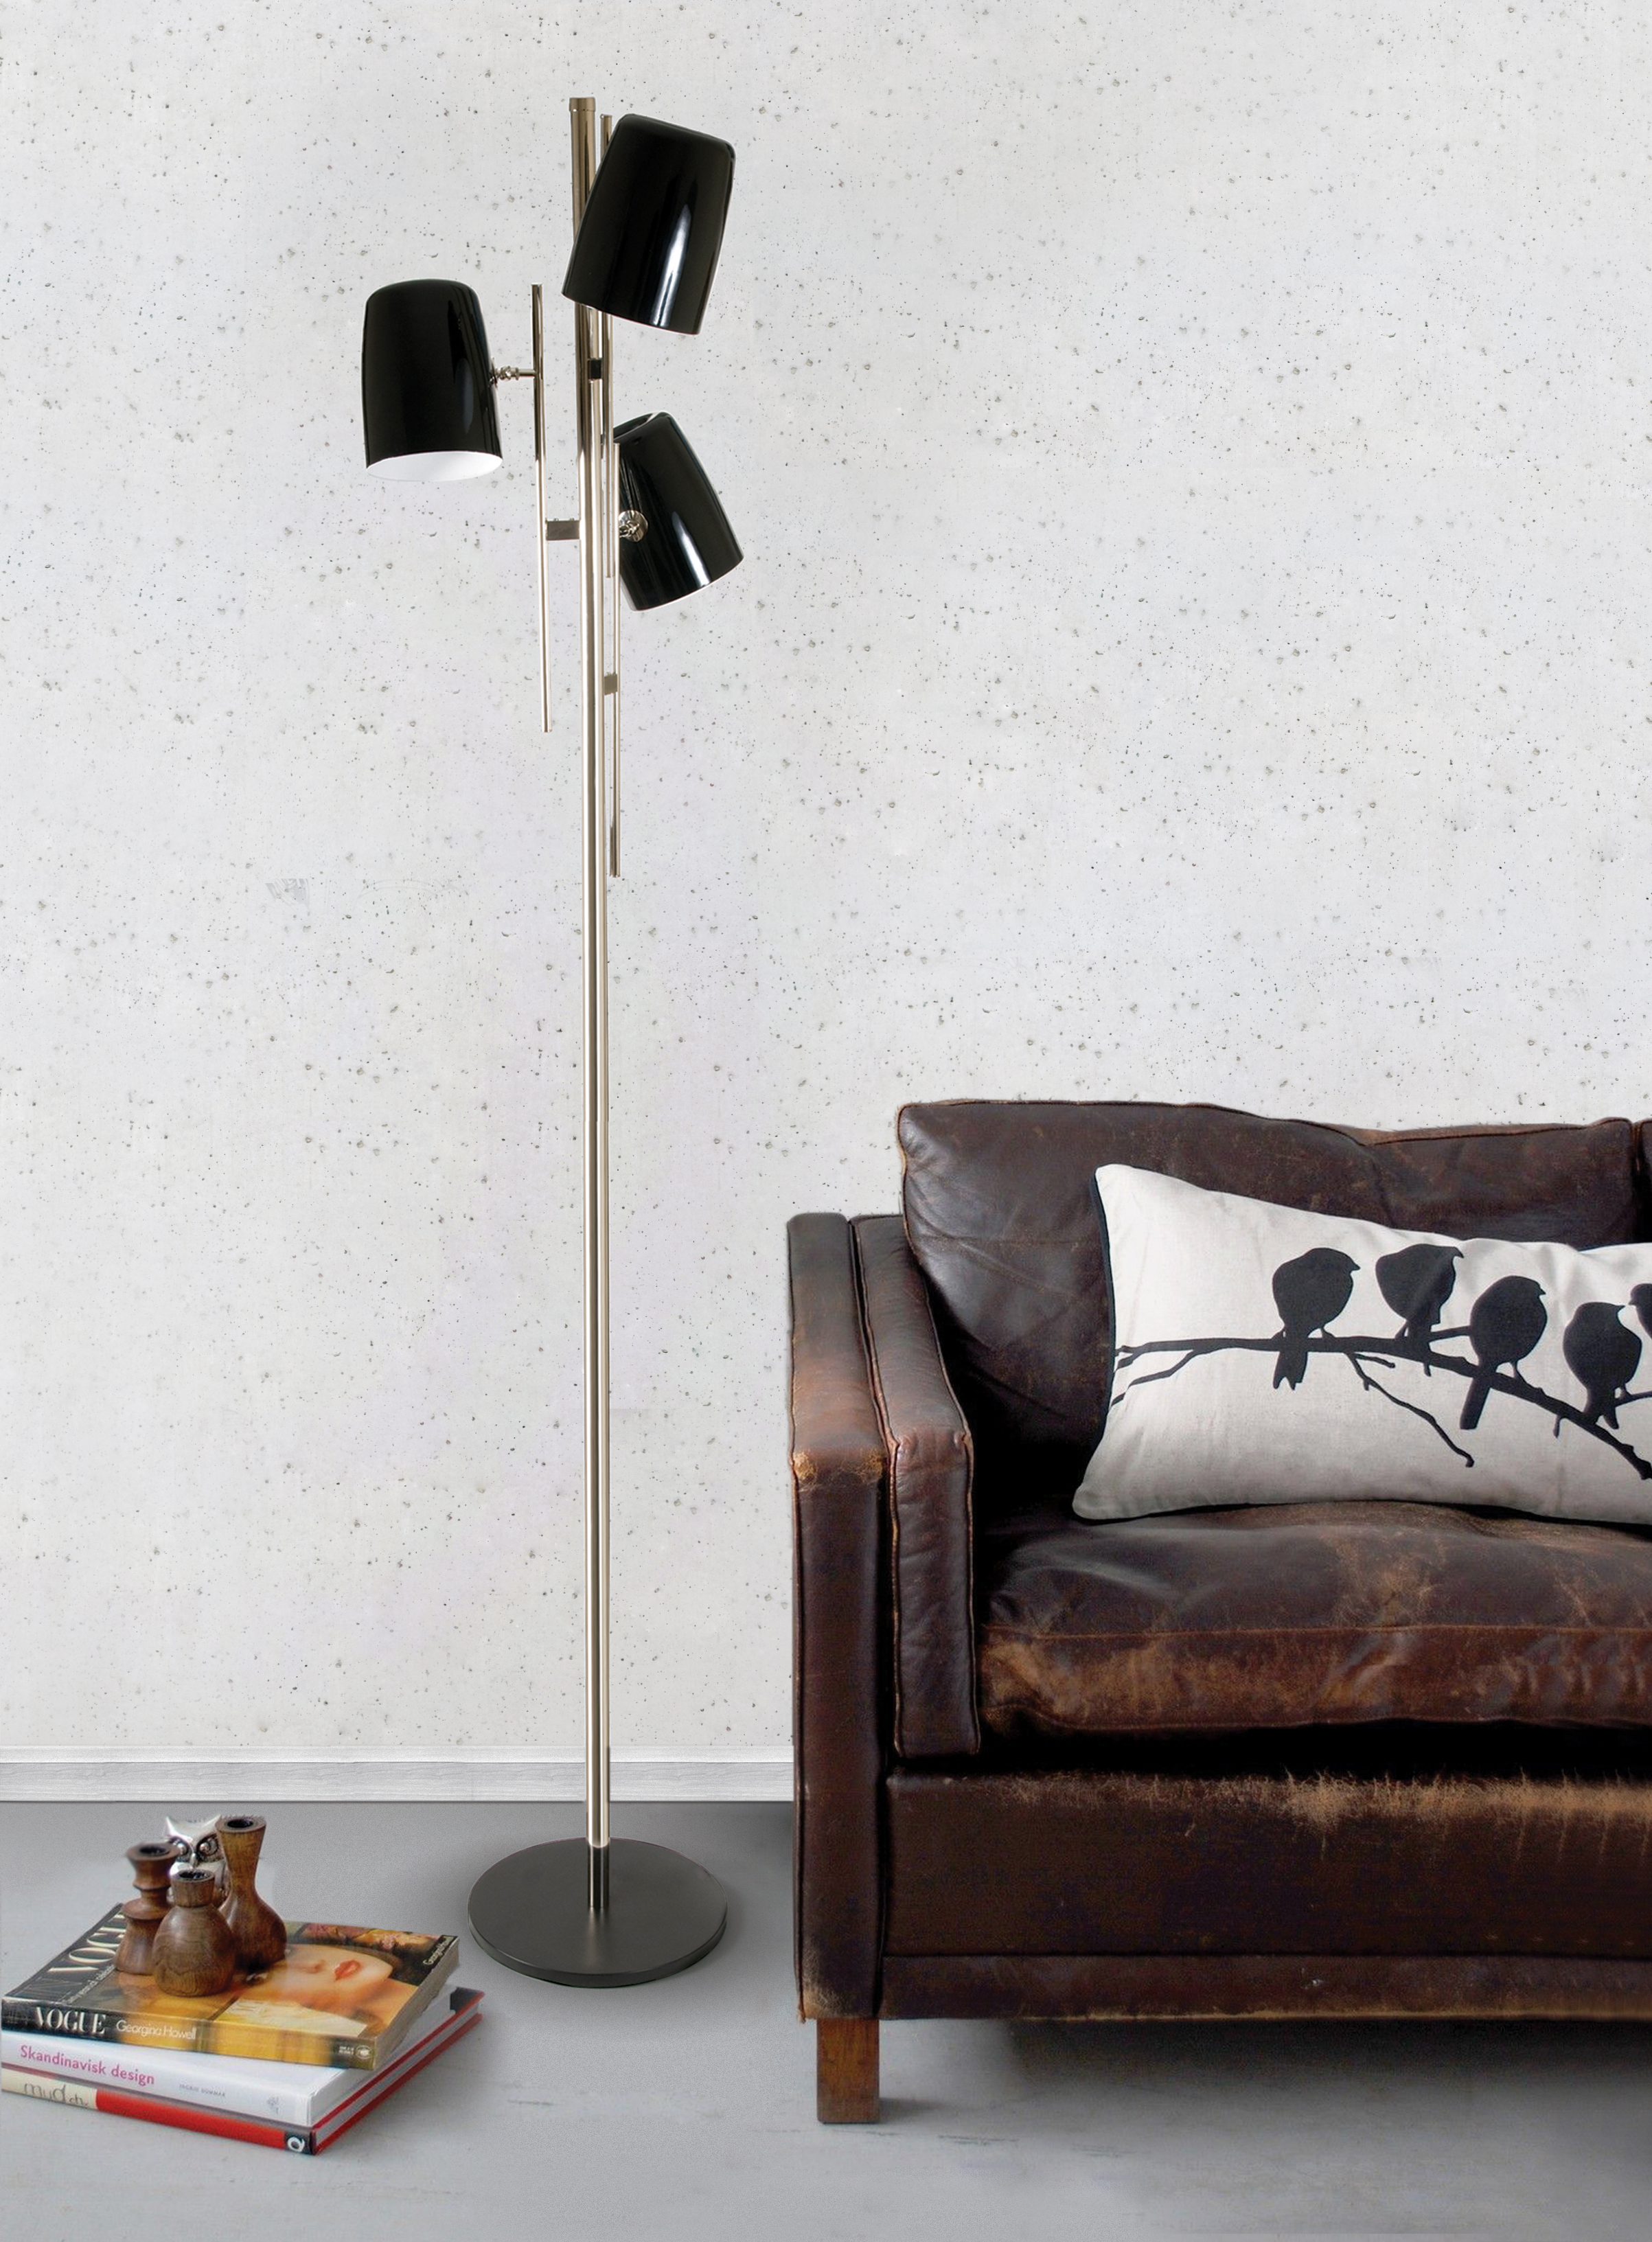 6 Mid-Century Modern Floor Lamps Perfect For Any Home 1 mid-century modern floor lamps 6 Mid-Century Modern Floor Lamps Perfect For Any Home 6 Mid Century Modern Floor Lamps Perfect For Any Home 1